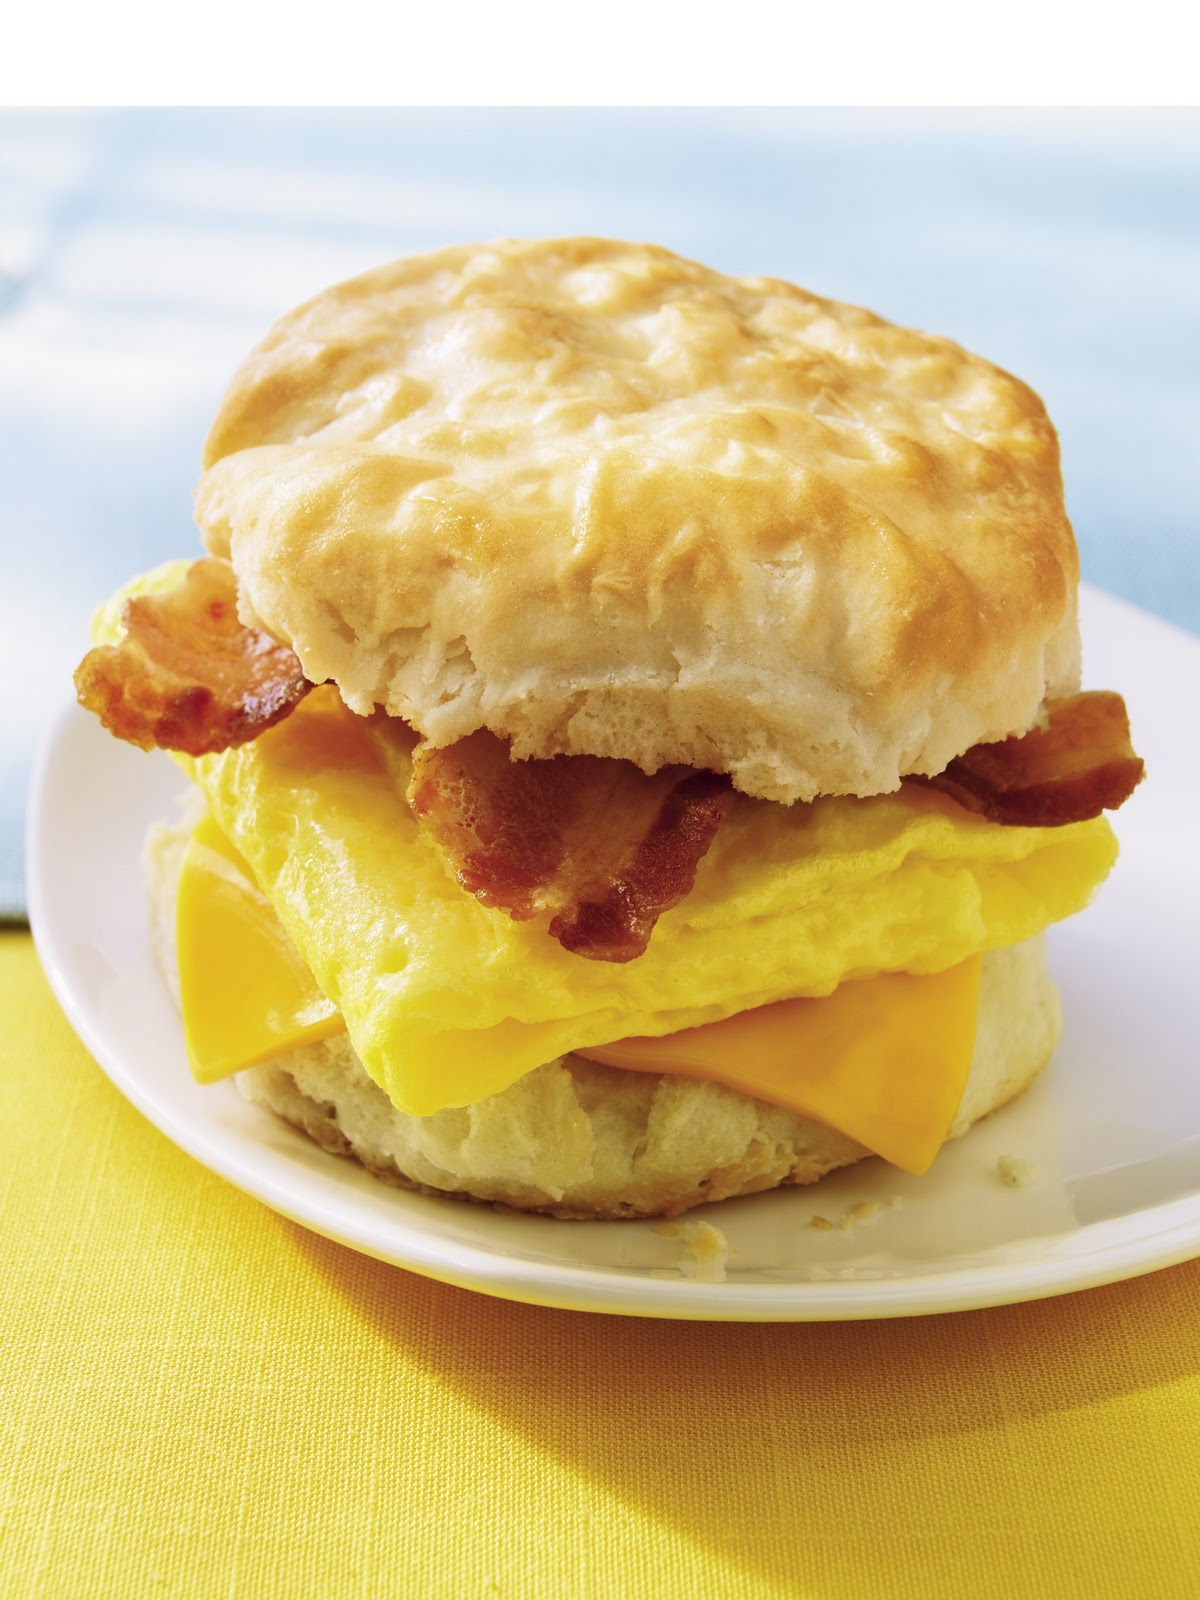 McDonald's Egg White Delight McMuffin Nutrition Facts